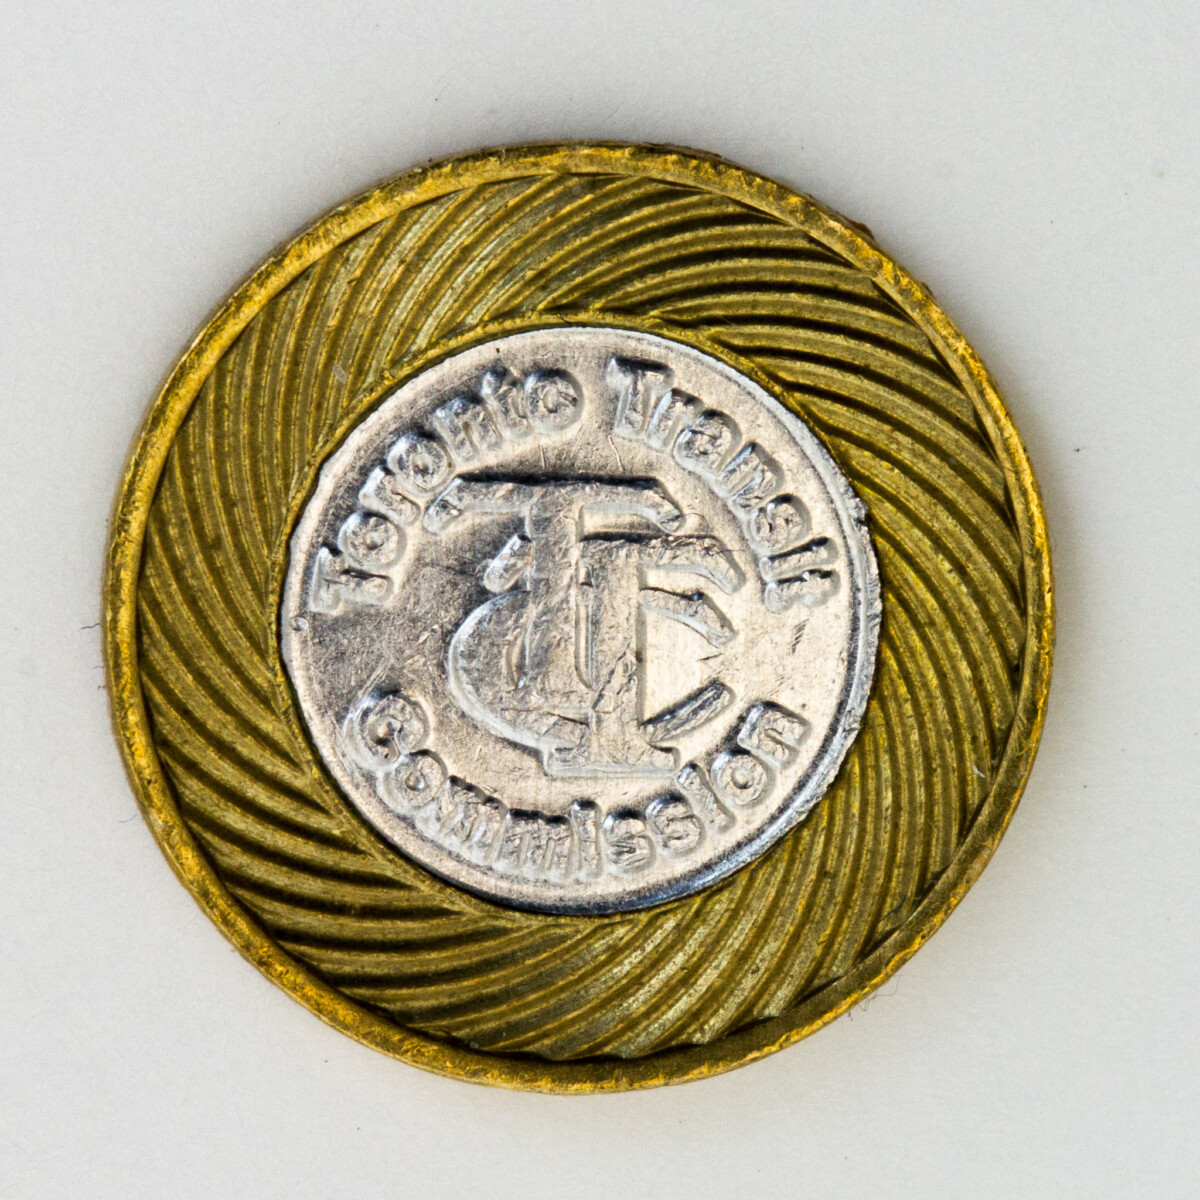 TTC Subway Token